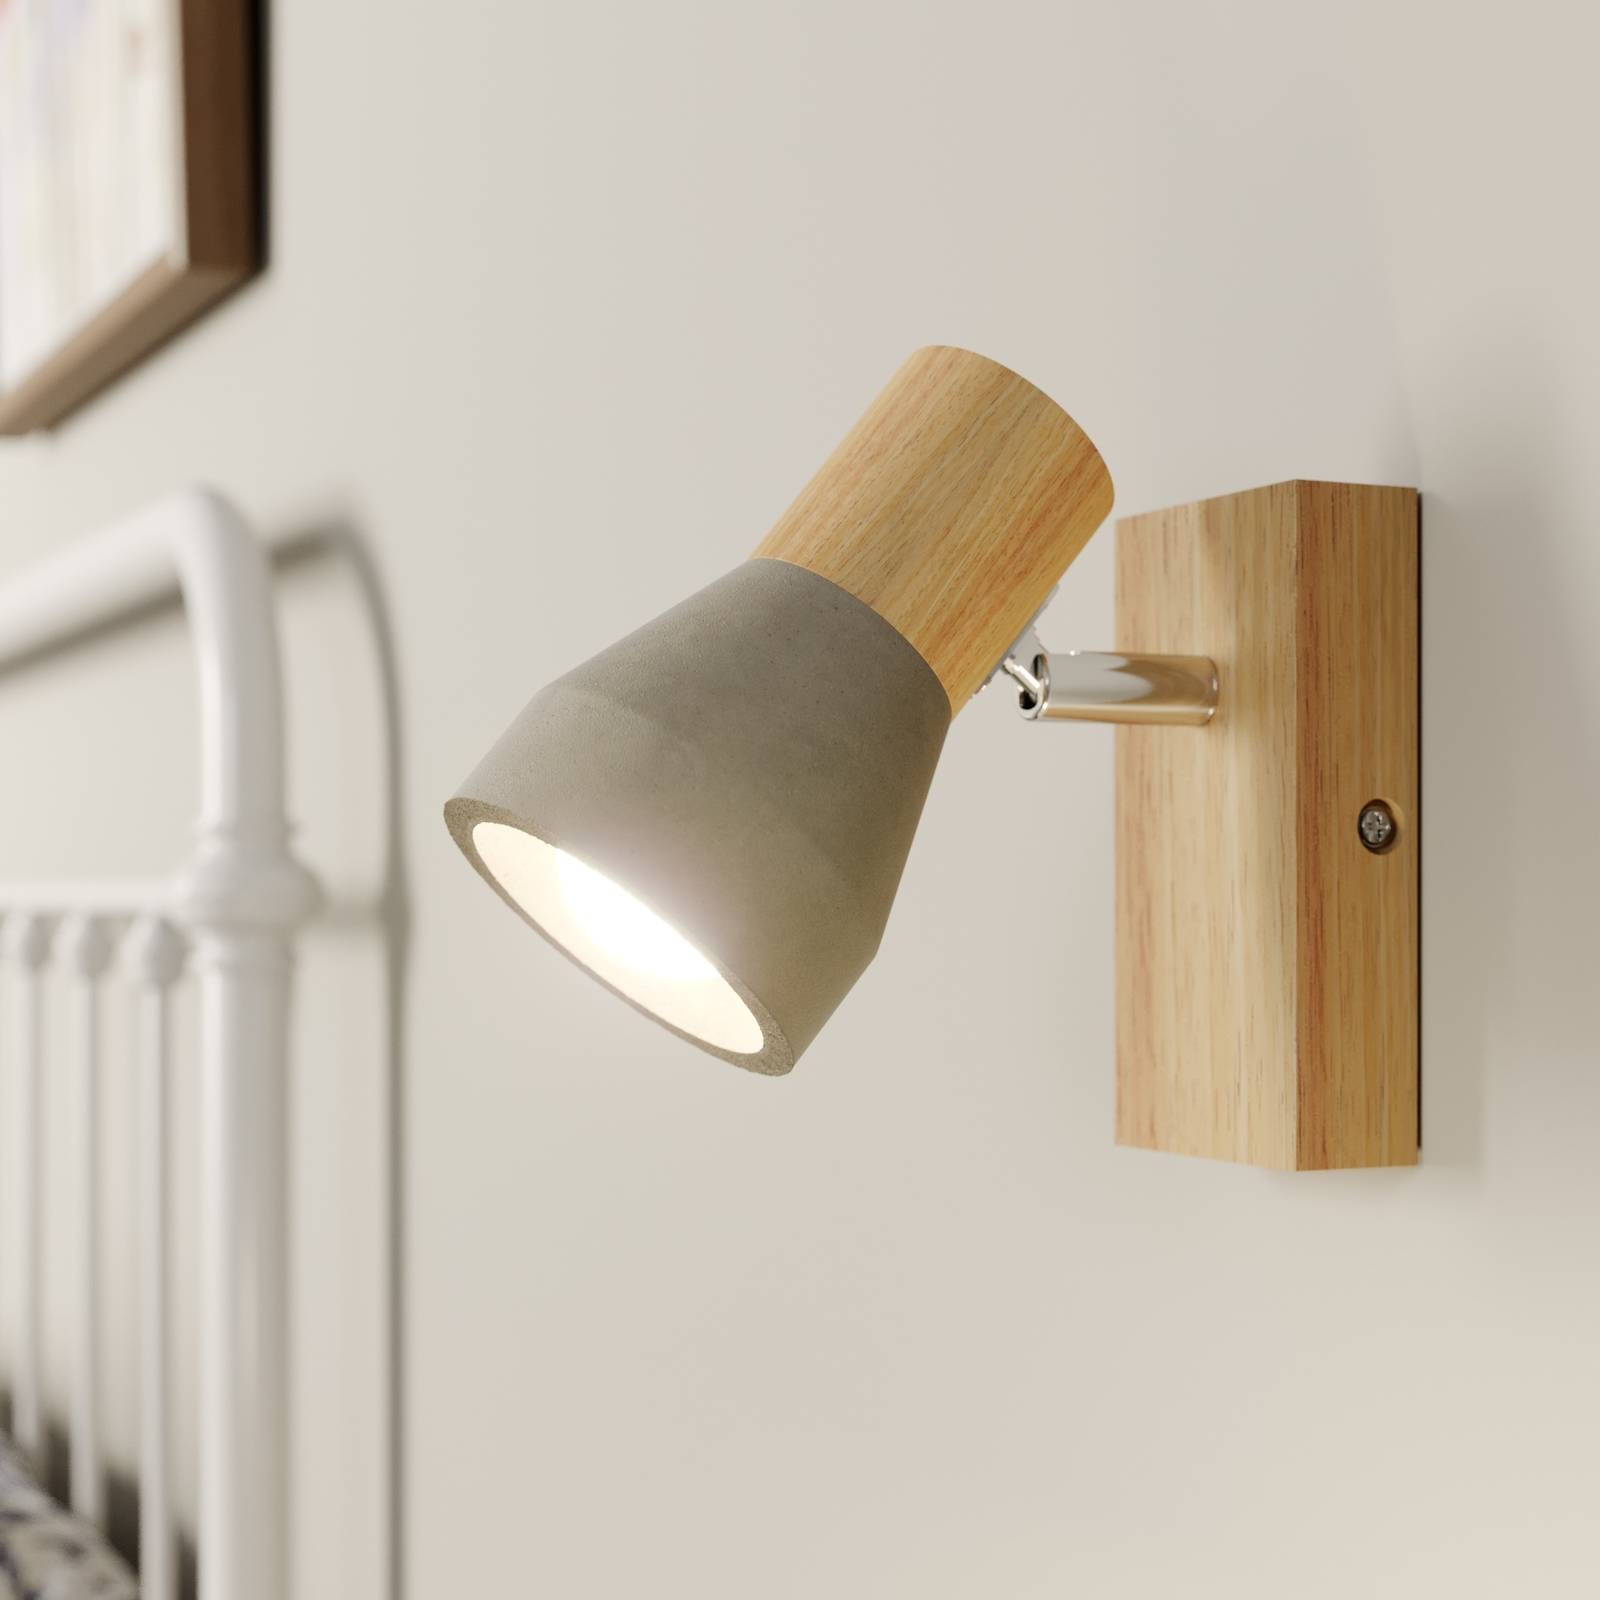 Filiz - LED spotlight made of wood and concrete from Lindby